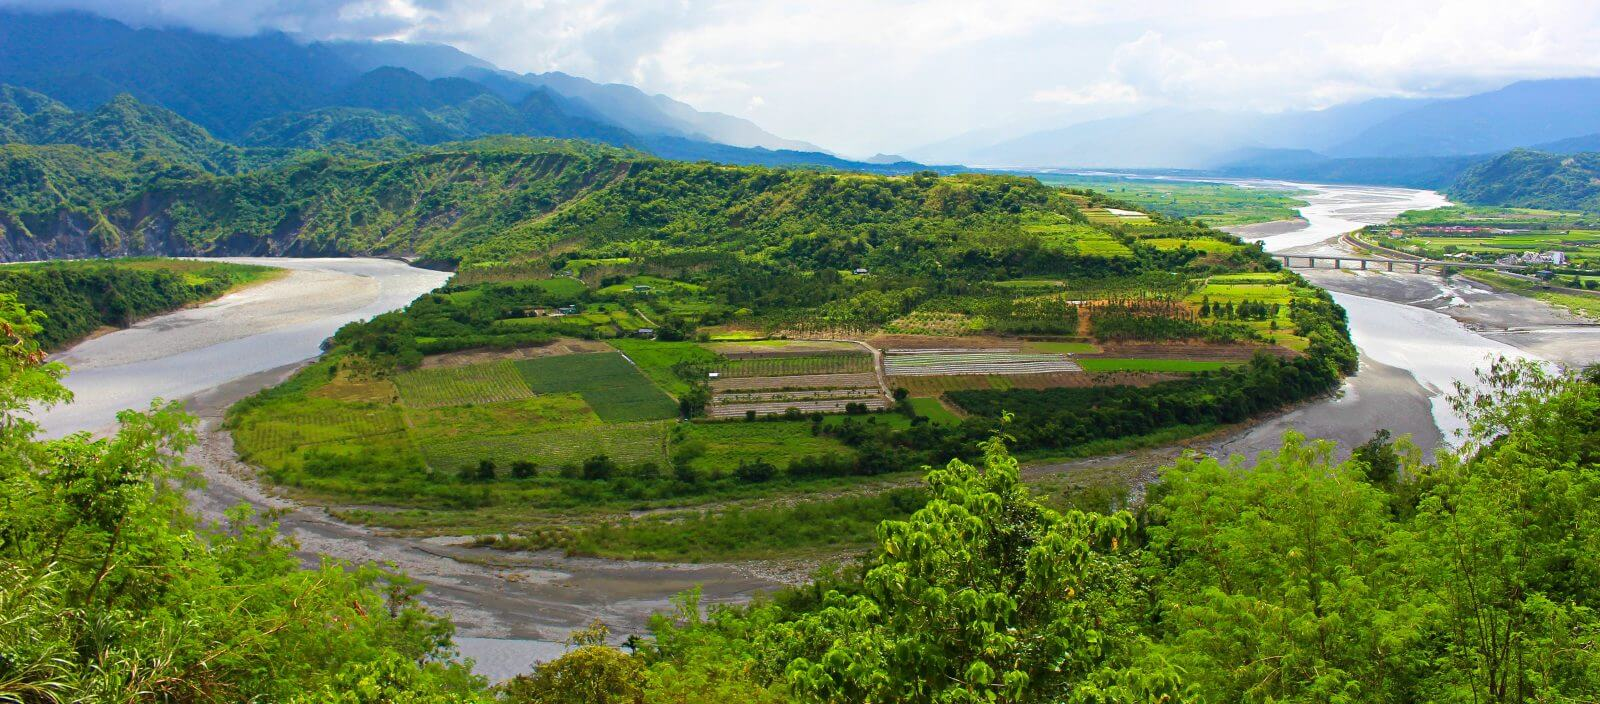 East Rift Valley Discovery Tour